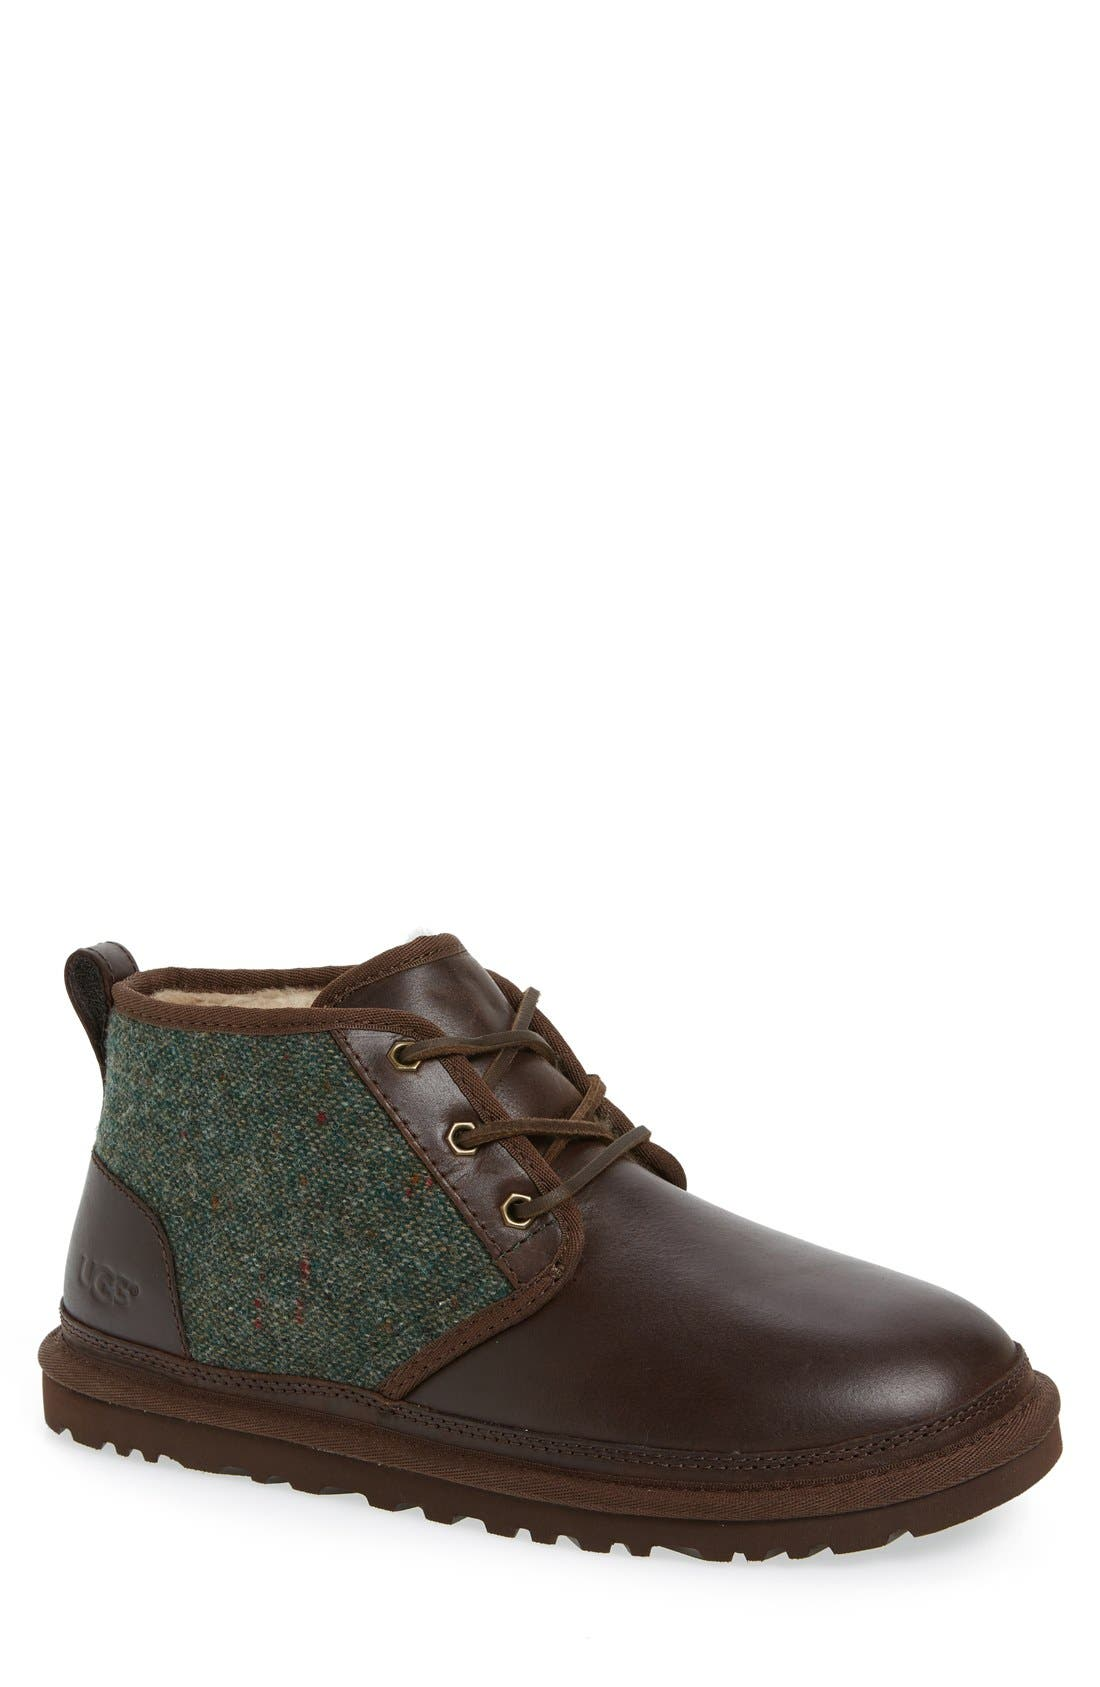 Neumel Wool & Leather Chukka Boot,                         Main,                         color, 207